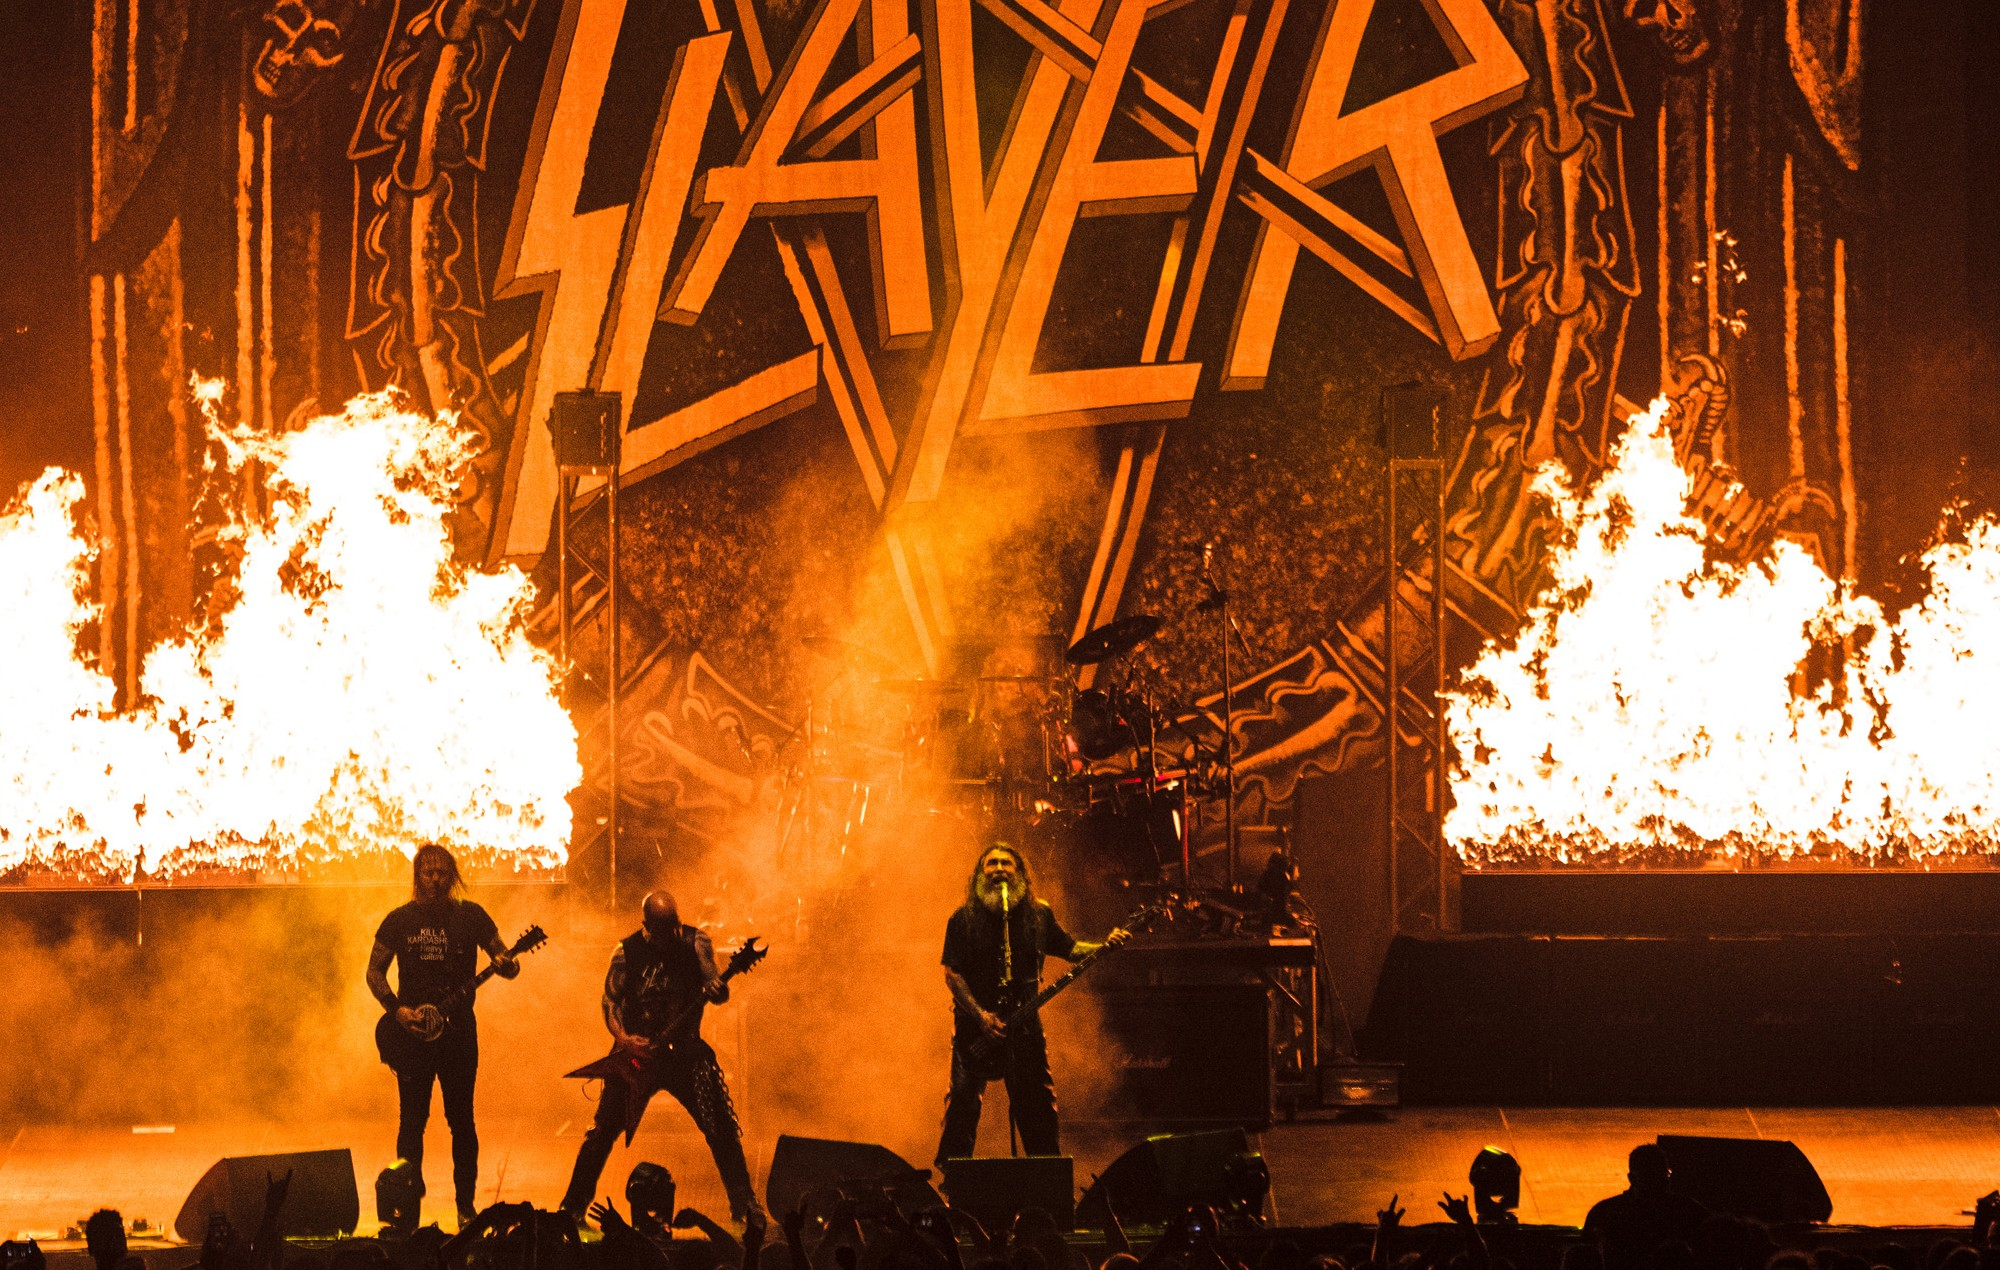 Review of Slayer's gory The Repentless Killology film